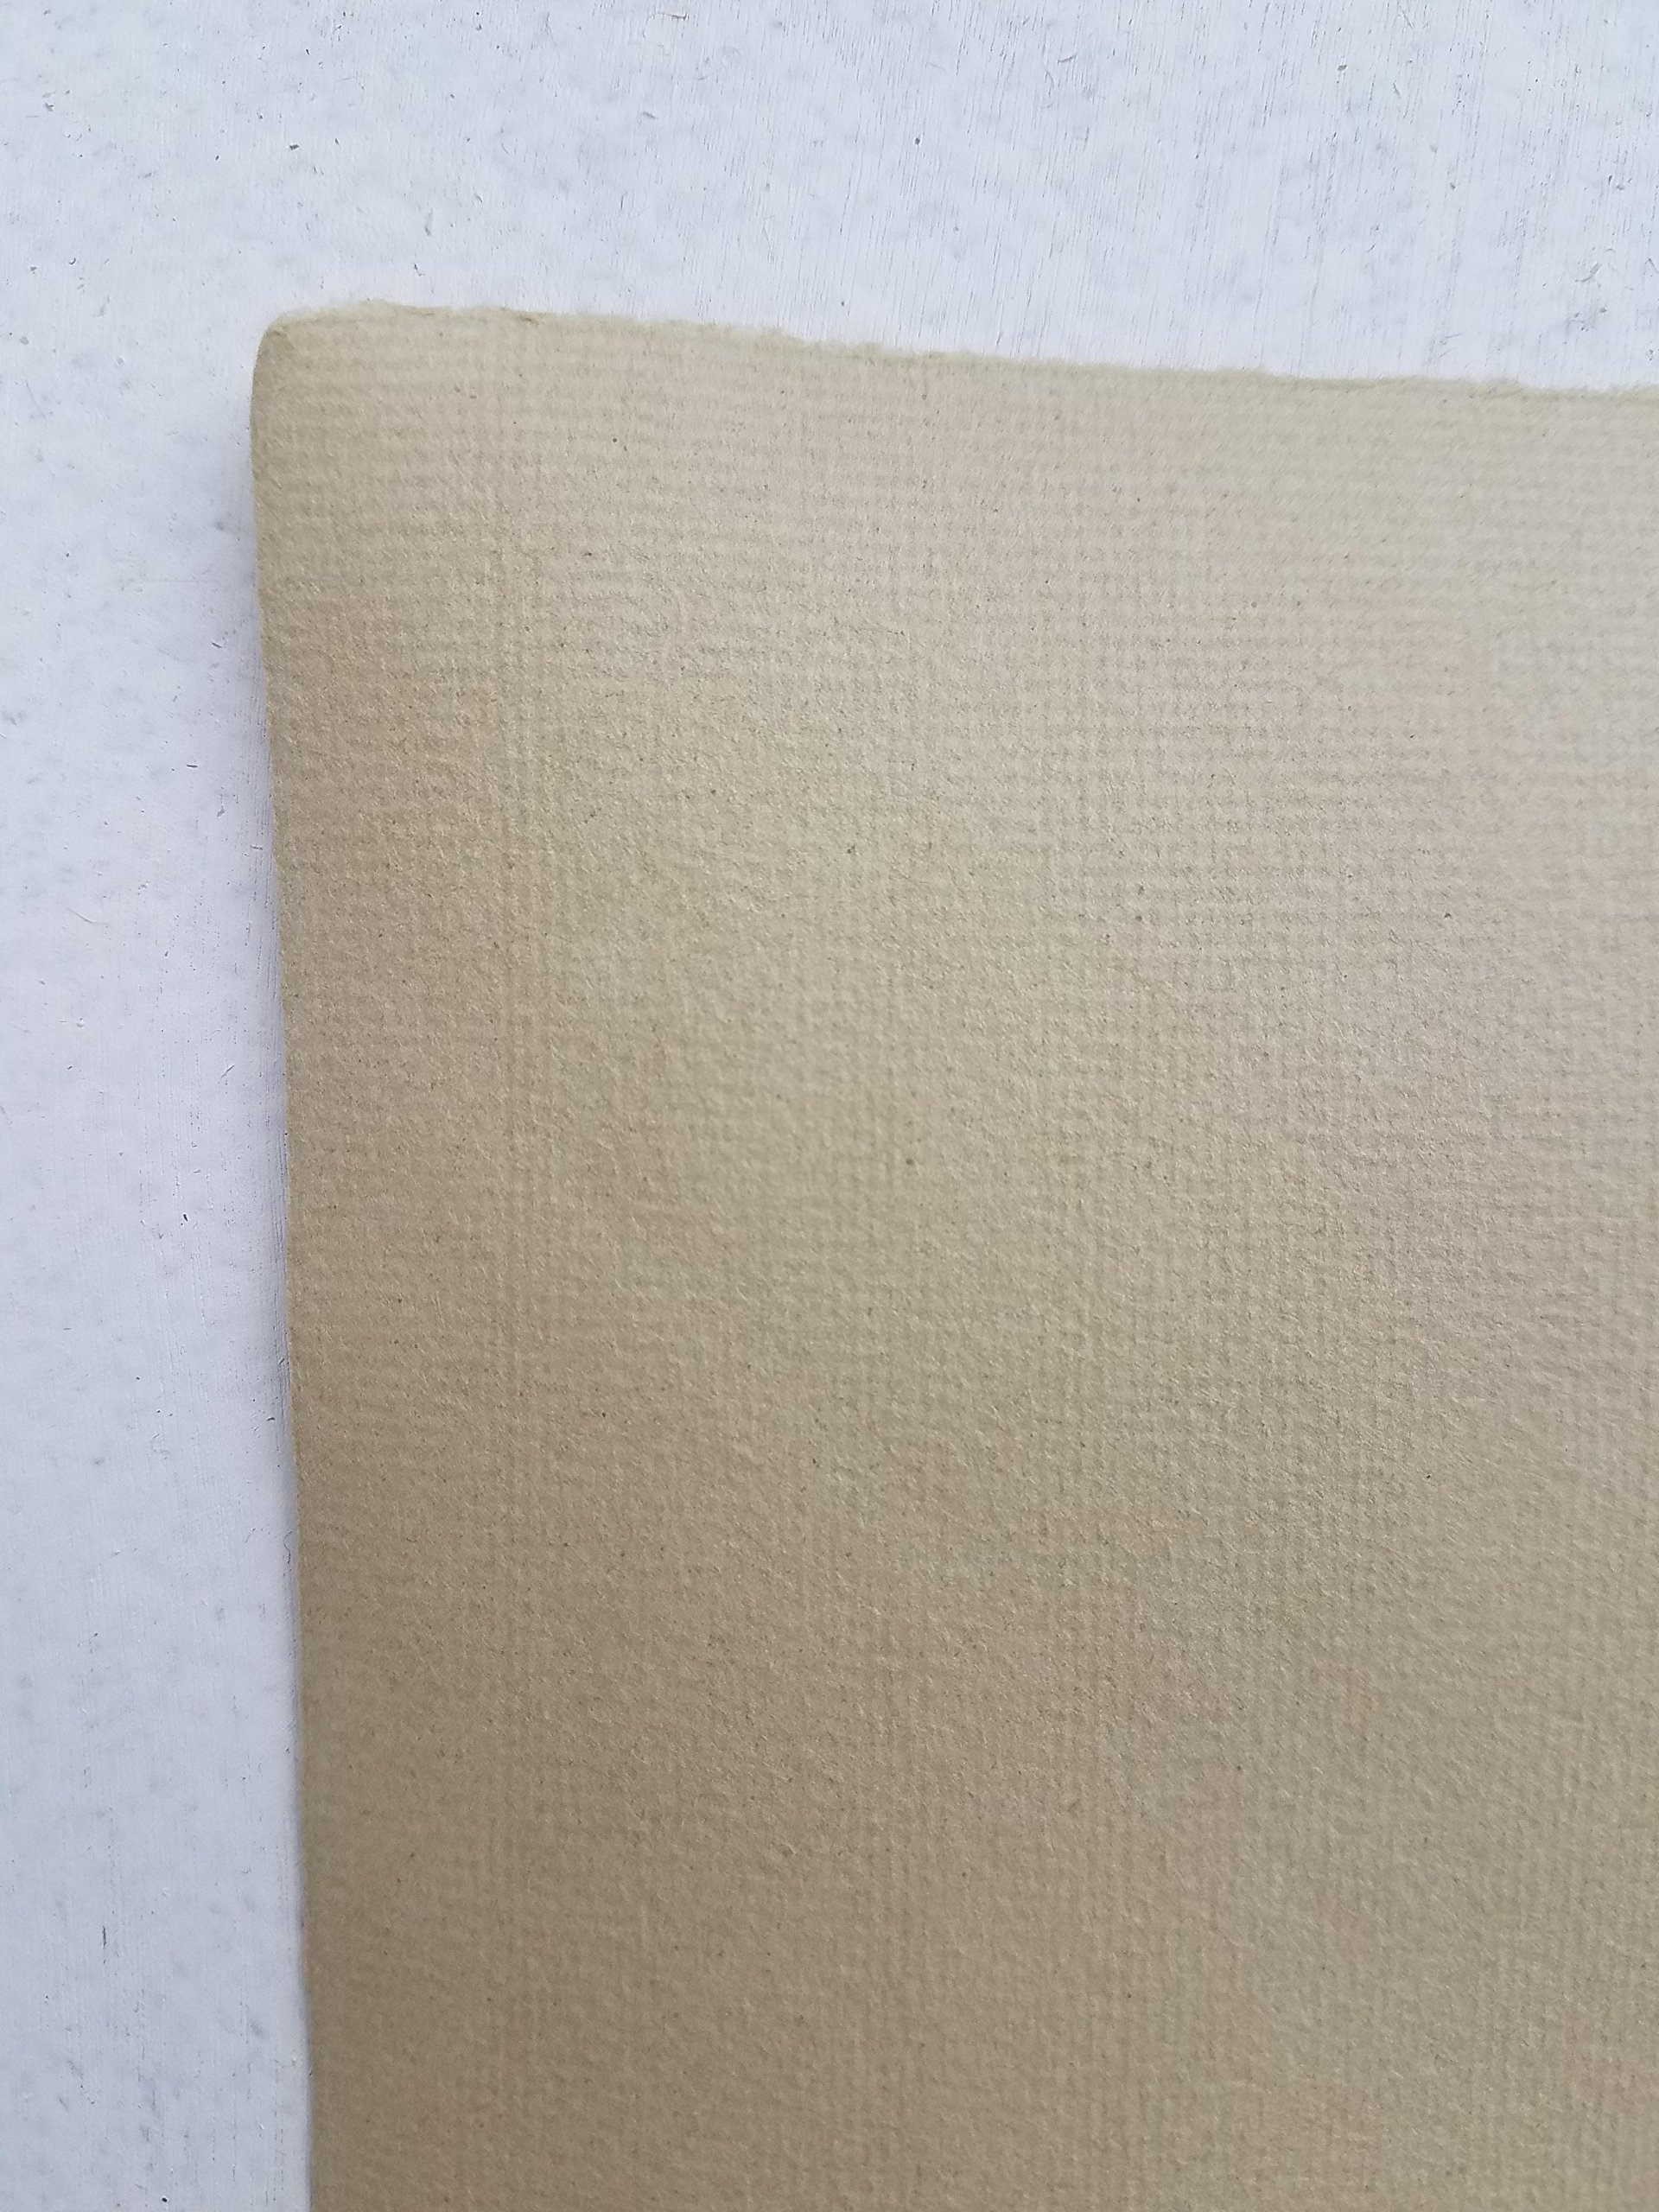 Hahnemuhle Ingres Paper, Earth Sand 118, 19'' X 25'', 100 gsm (25 Sheet Package) by Hahnemuhle Ingres Antique